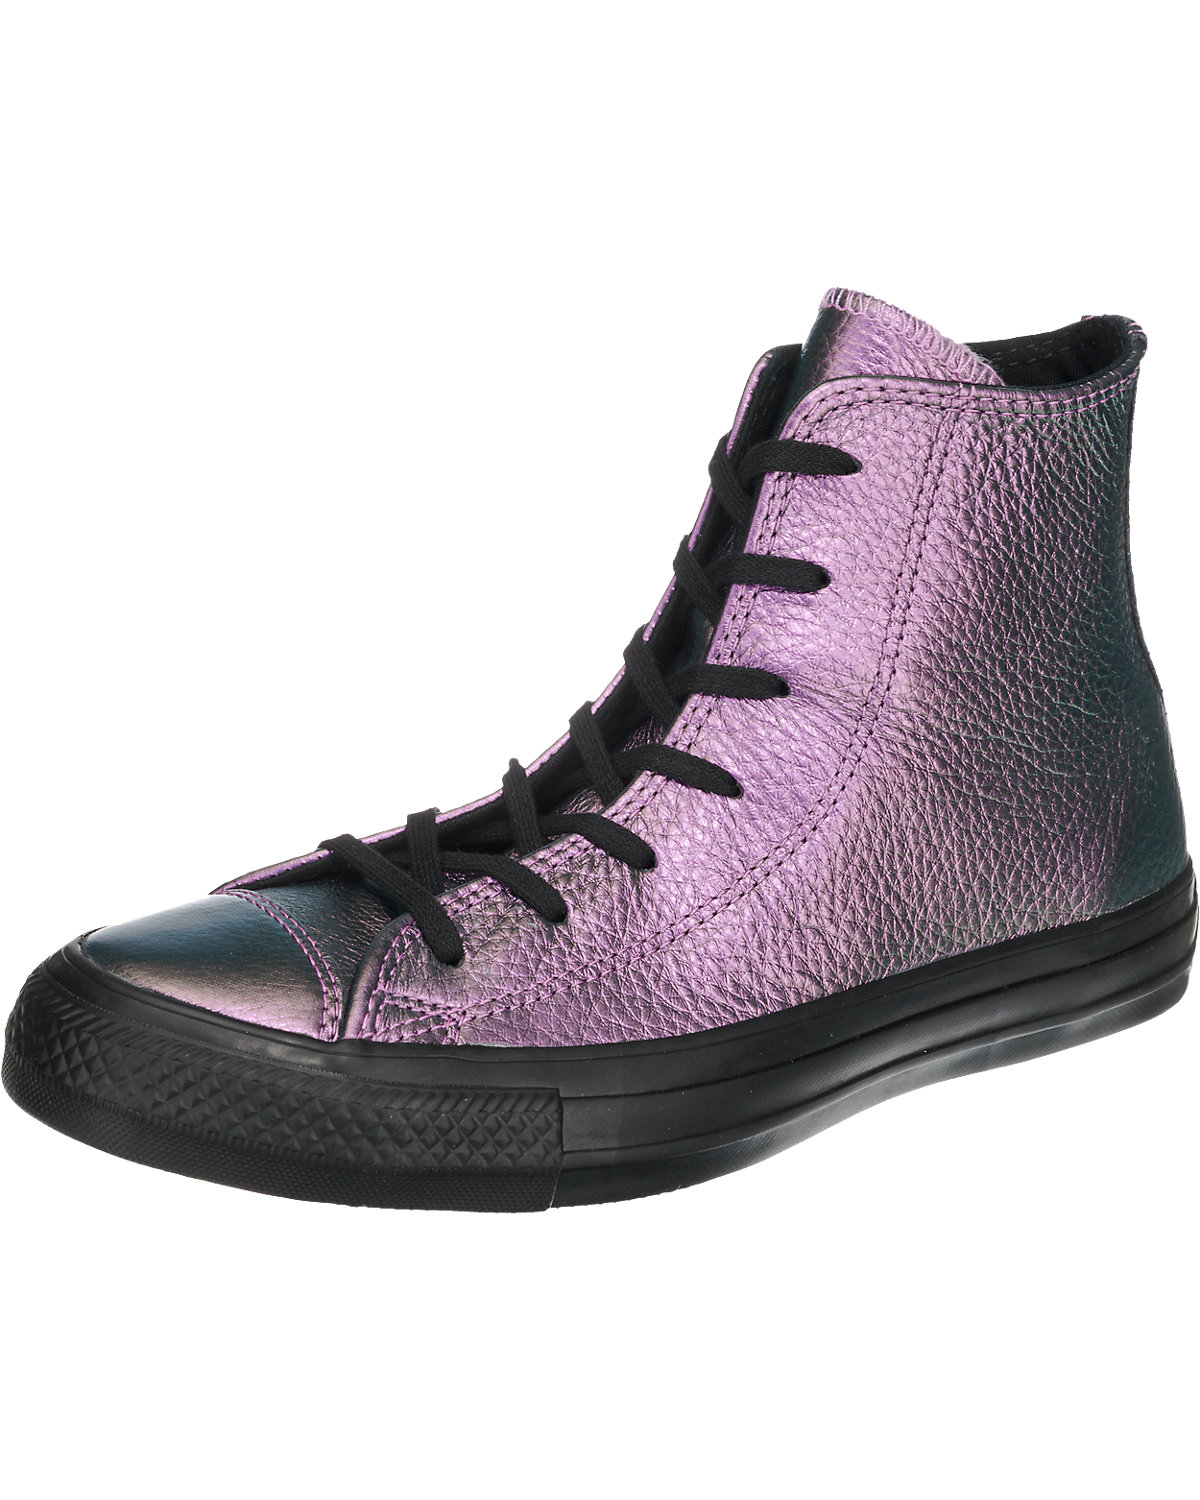 CONVERSE, CONVERSE Chuck Taylor All Star High Sneakers, lila